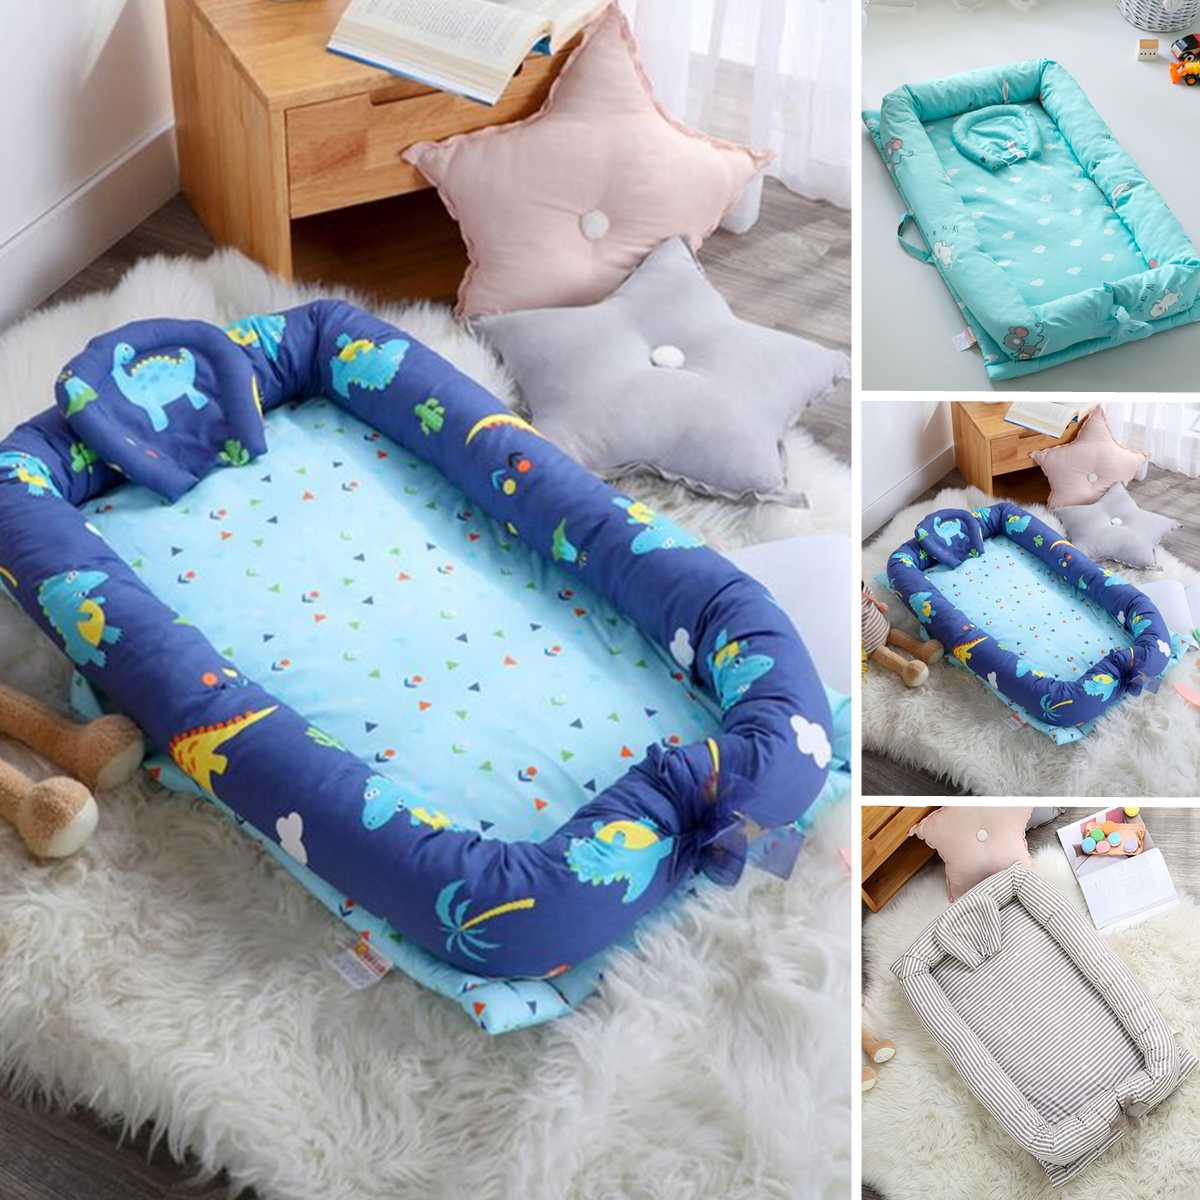 90x55x15cm Baby Nest Bed Portable Crib Travel Bed Infant Toddler Cotton Cradle For Newborn Baby Bassinet Bumper